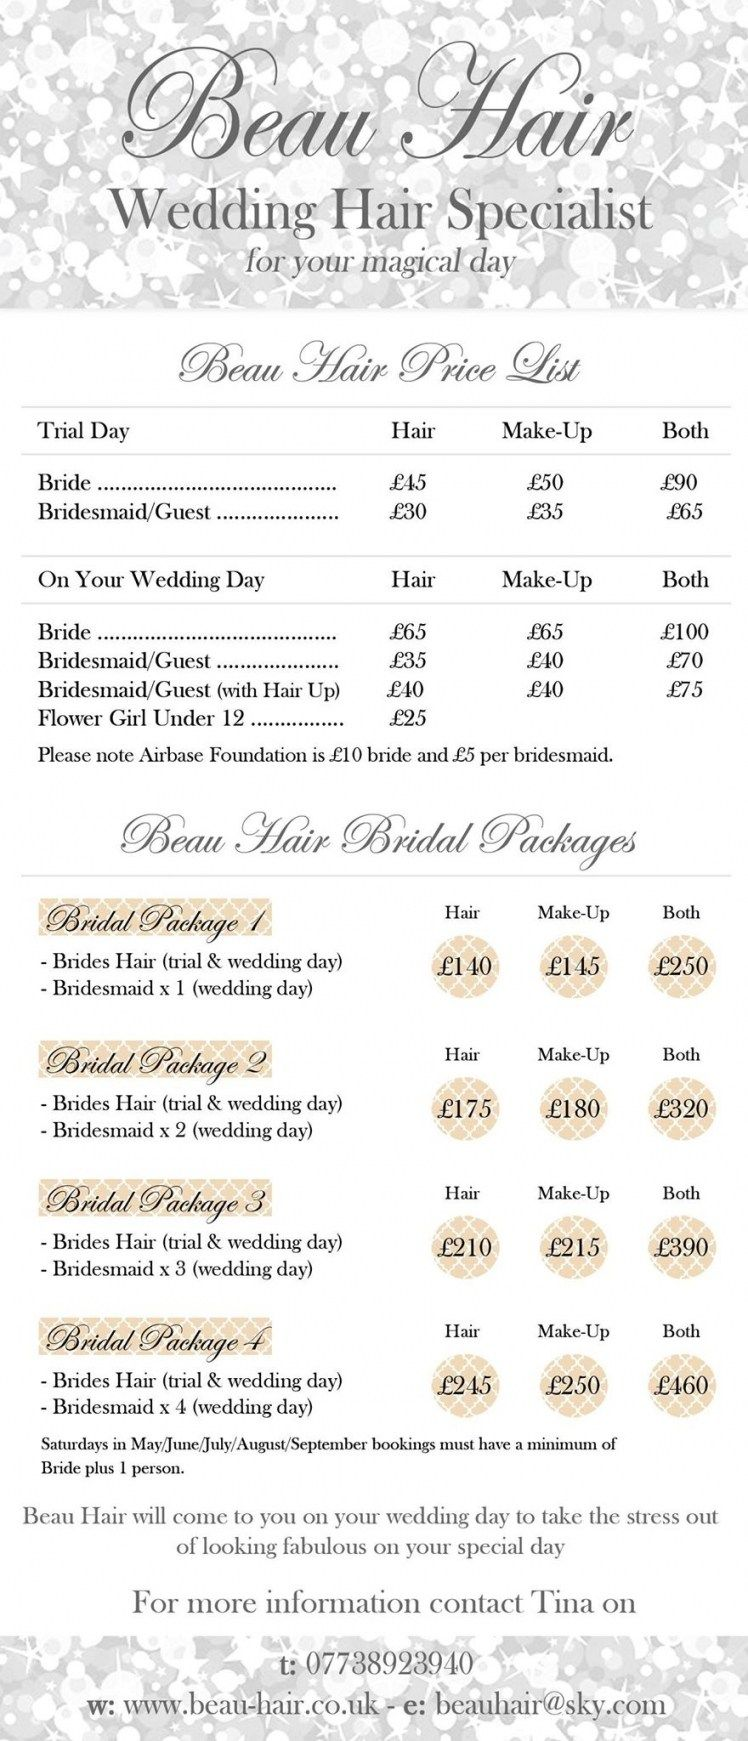 Wedding Hair Prices Sheffield | Hairstyles Ideas For Me | Pinterest ...